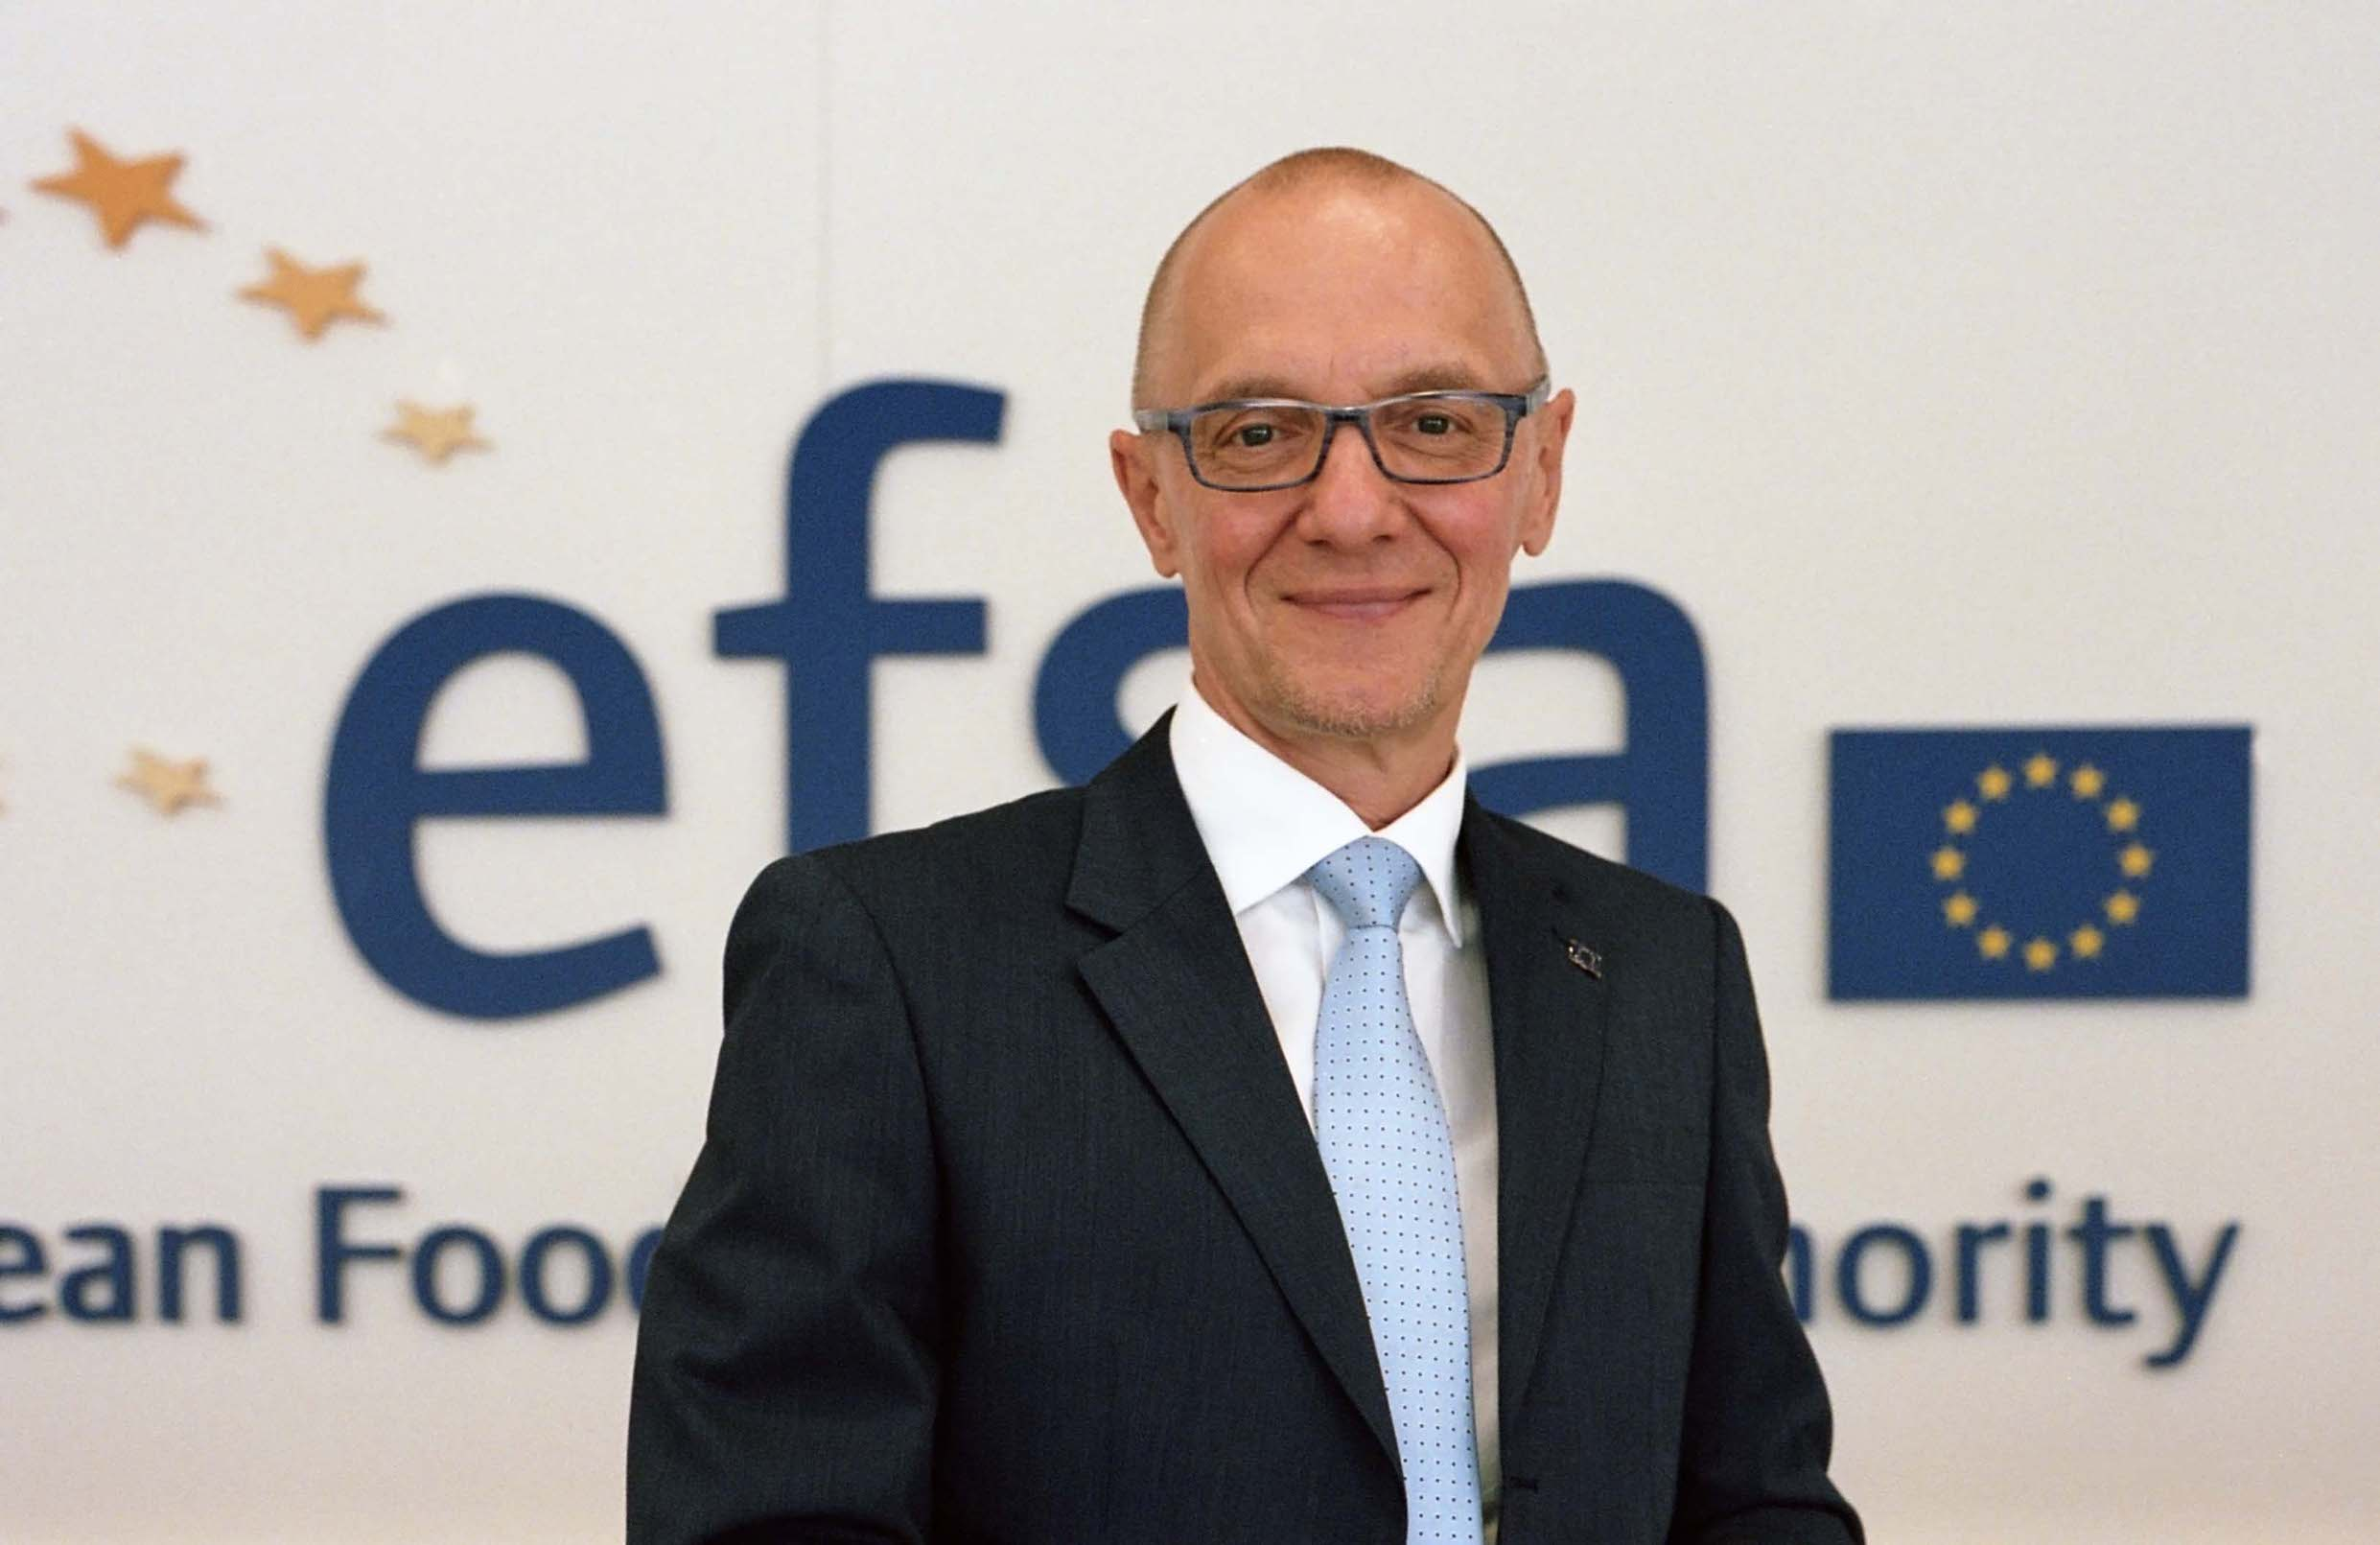 Bernhard Url, Executive Director of the European Food Safety Authority (EFSA)